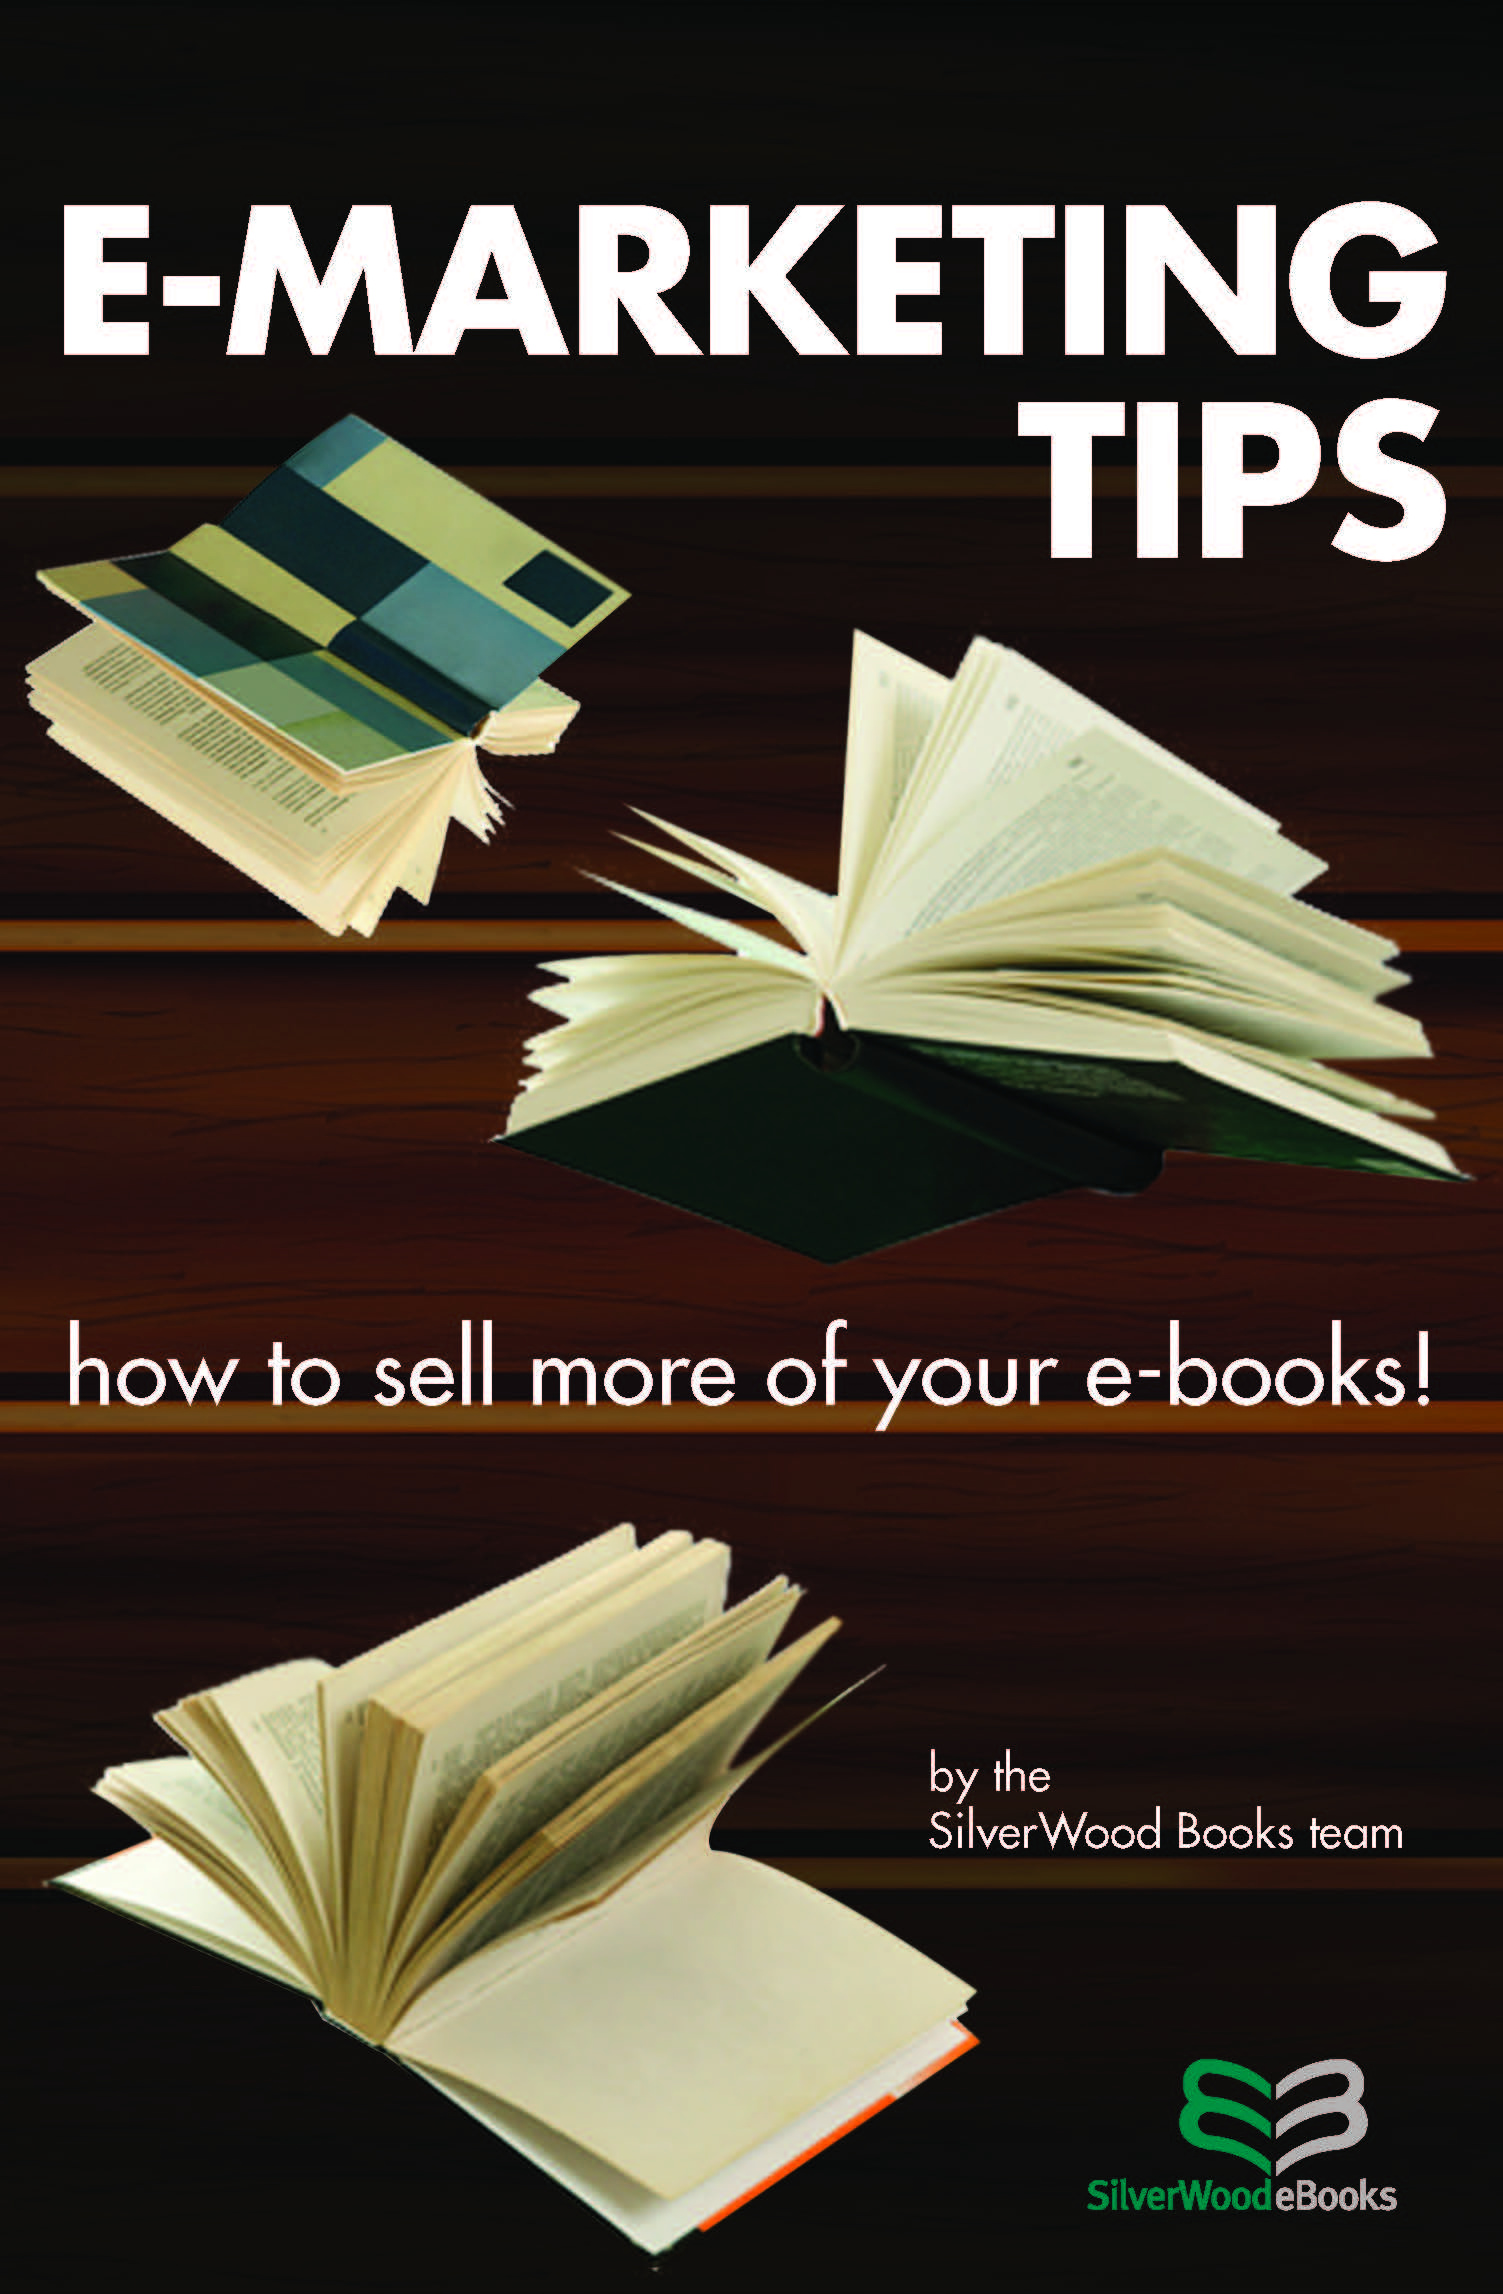 E-Book Marketing Tips